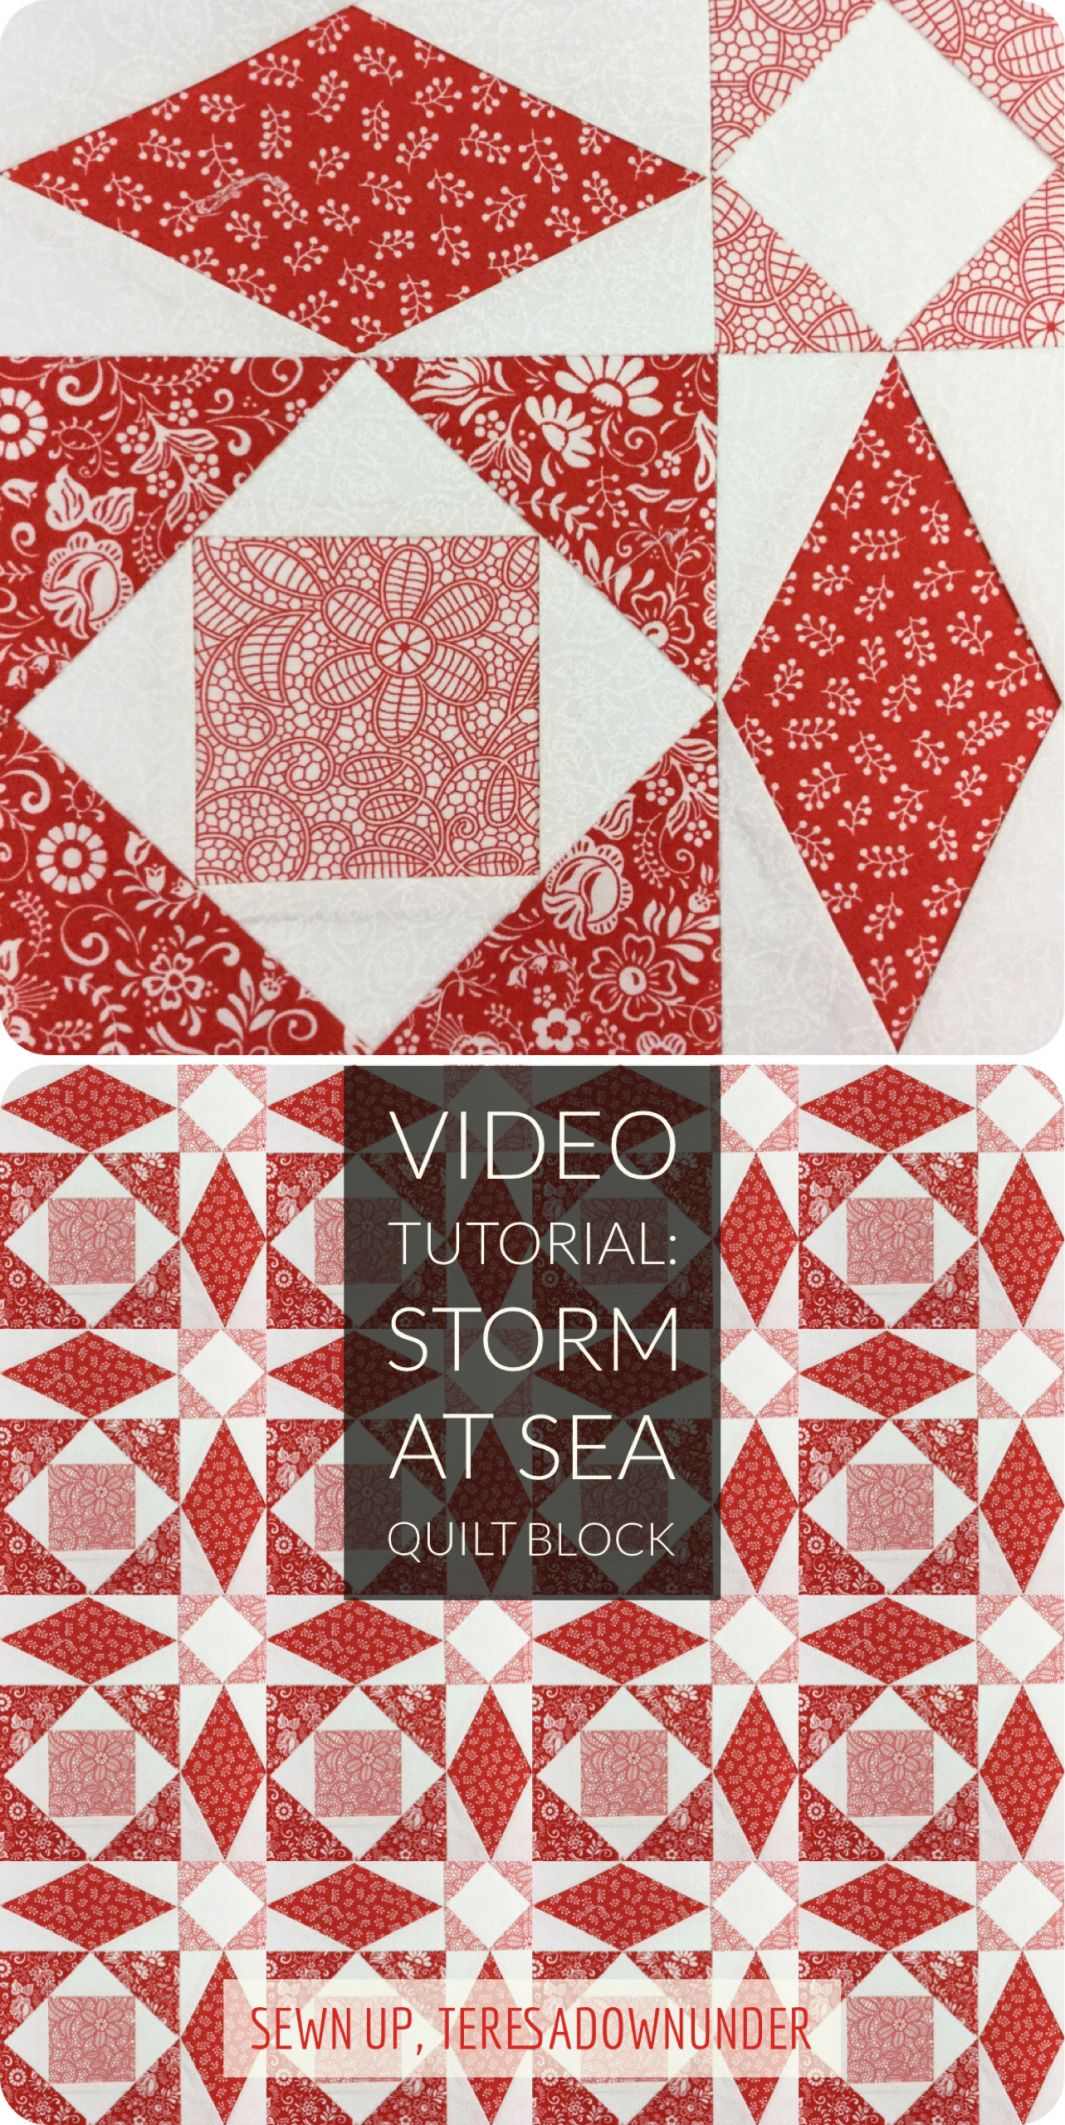 Video tutorial Storm at sea quilt block – version 1